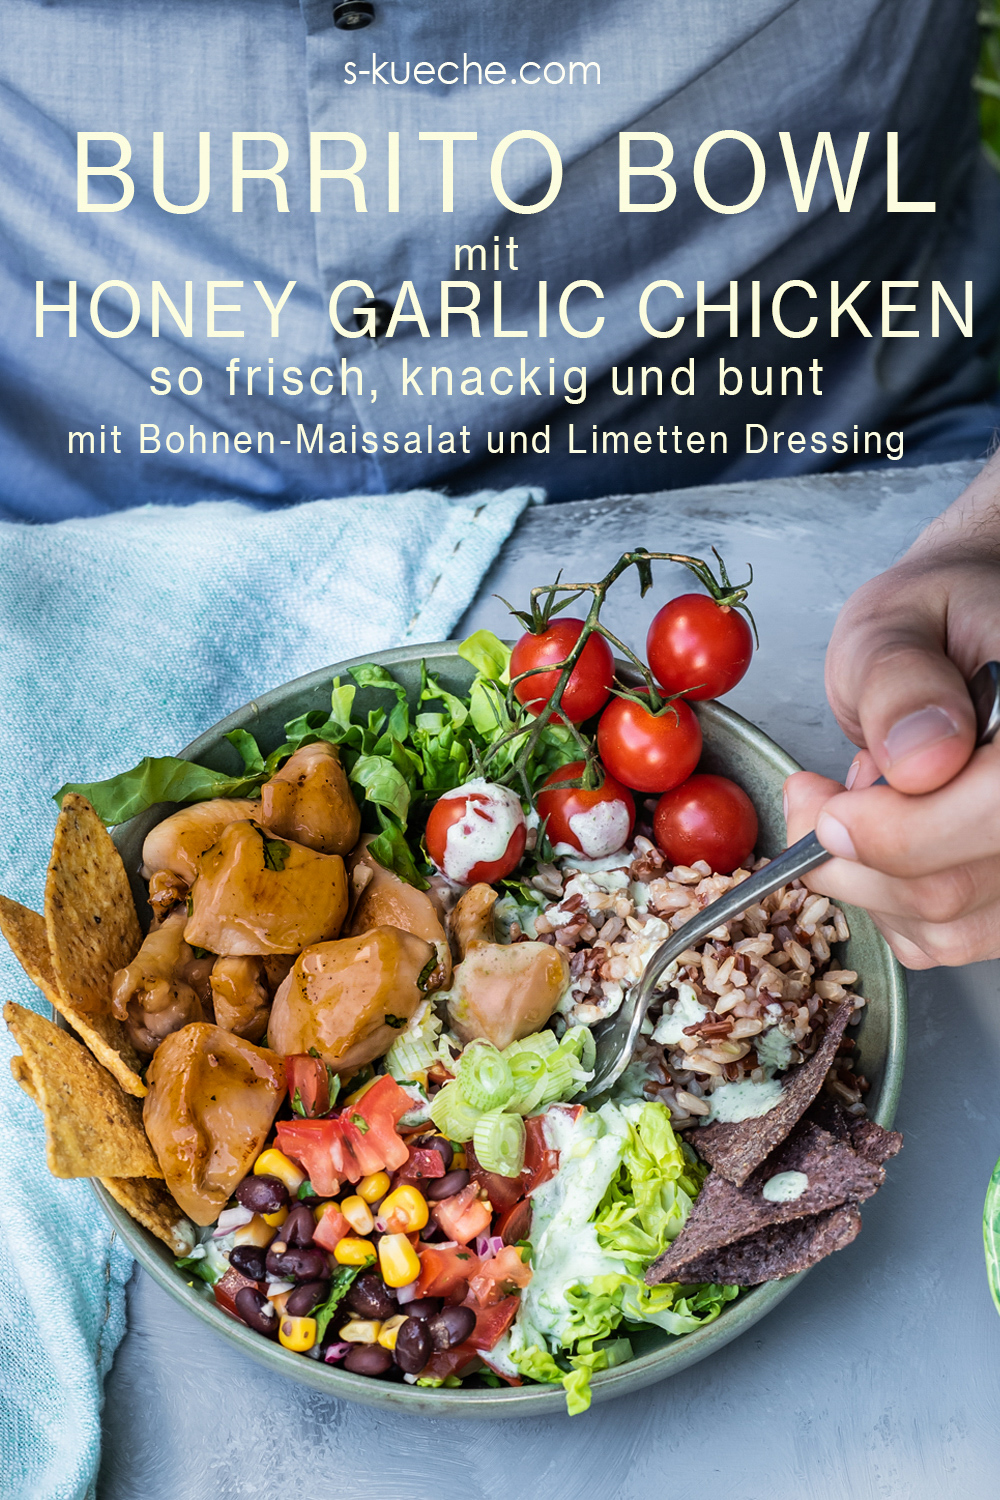 Rezept für Burrito Bowl mit Honey Garlic Chicken